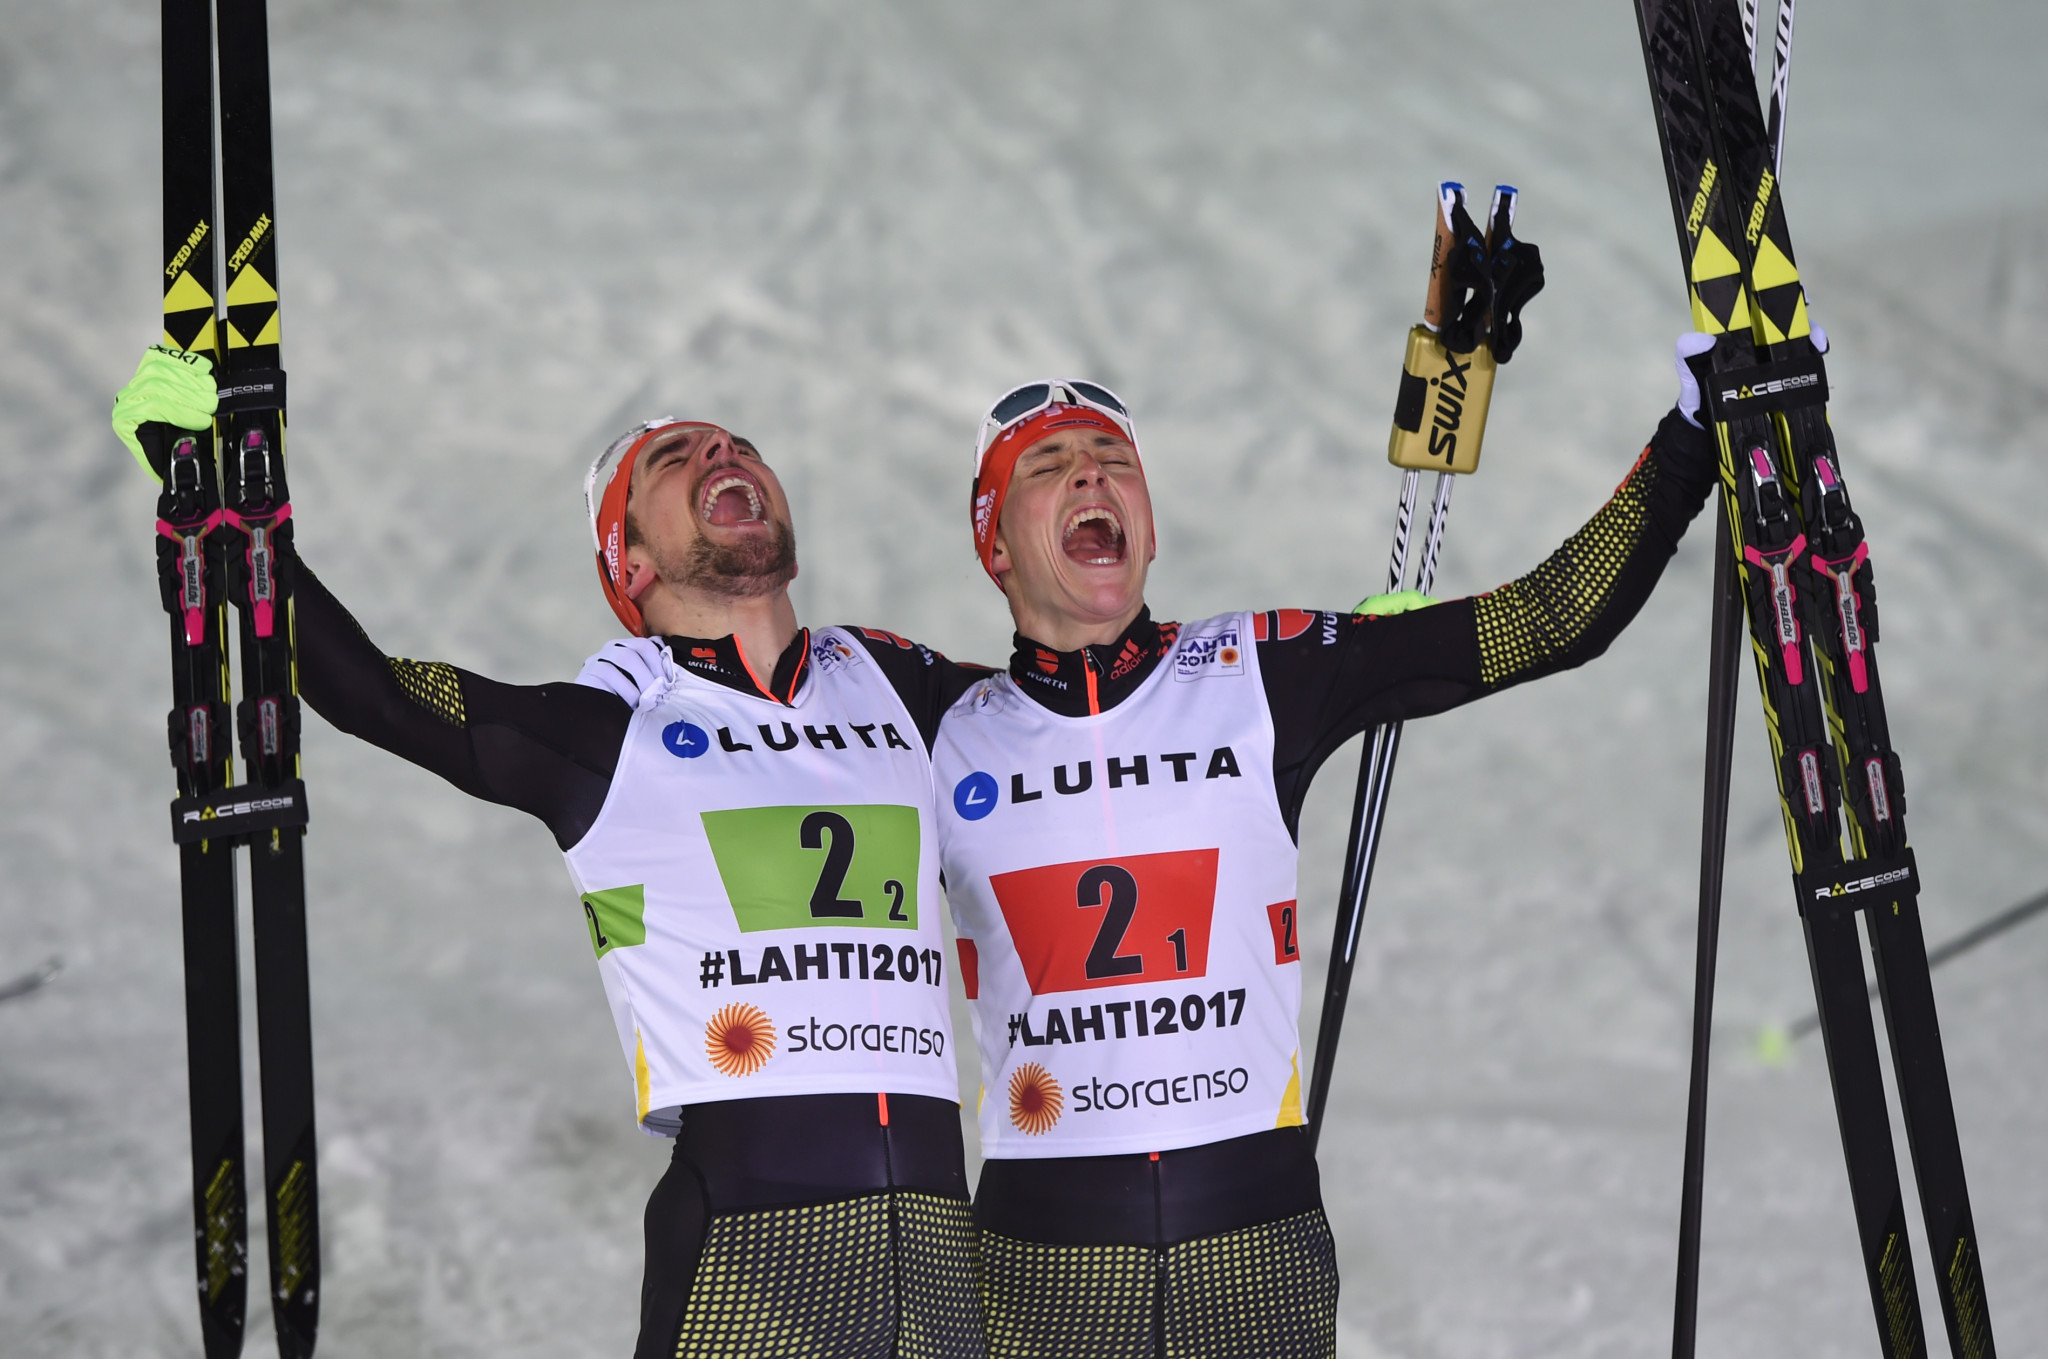 Olympic gold medallist Eric Frenzel and reigning world champion Johannes Rydzek are set to renew their rivalry ©Getty Images